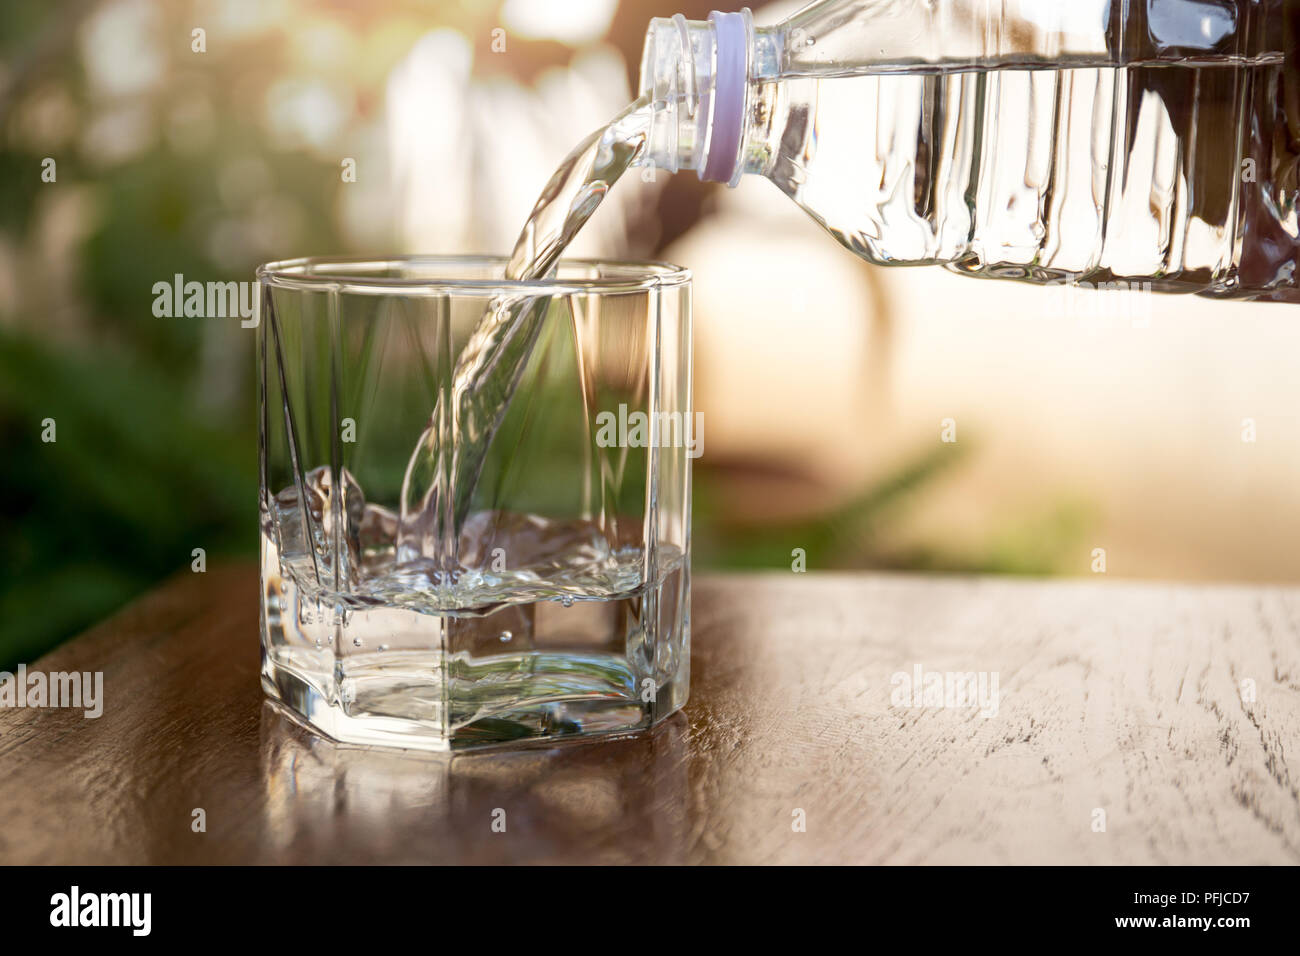 Outstanding Pouring Fresh Water From Bottle On Glass On Wooden Table Interior Design Ideas Inesswwsoteloinfo